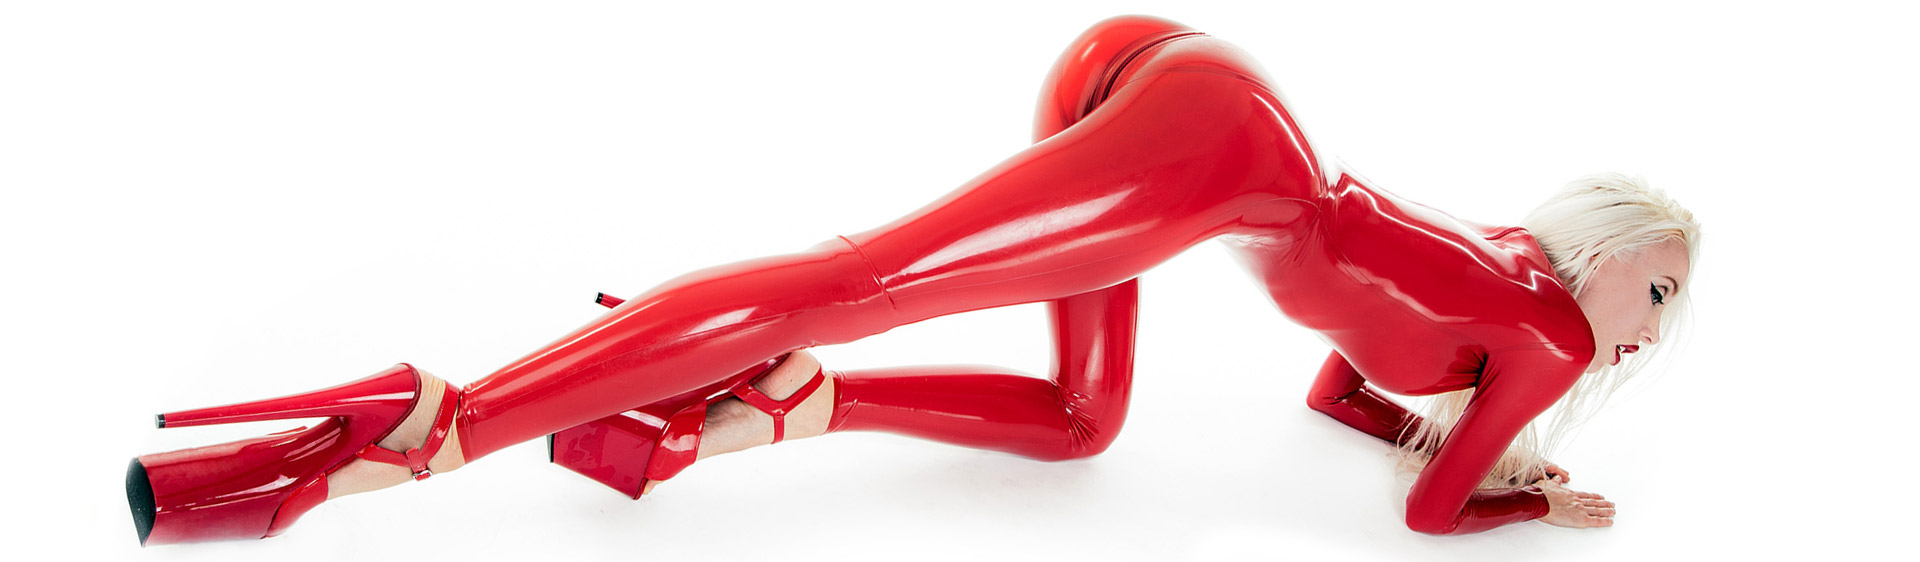 Skin tight red latex catsuit with glossy surface and zipper at crotch